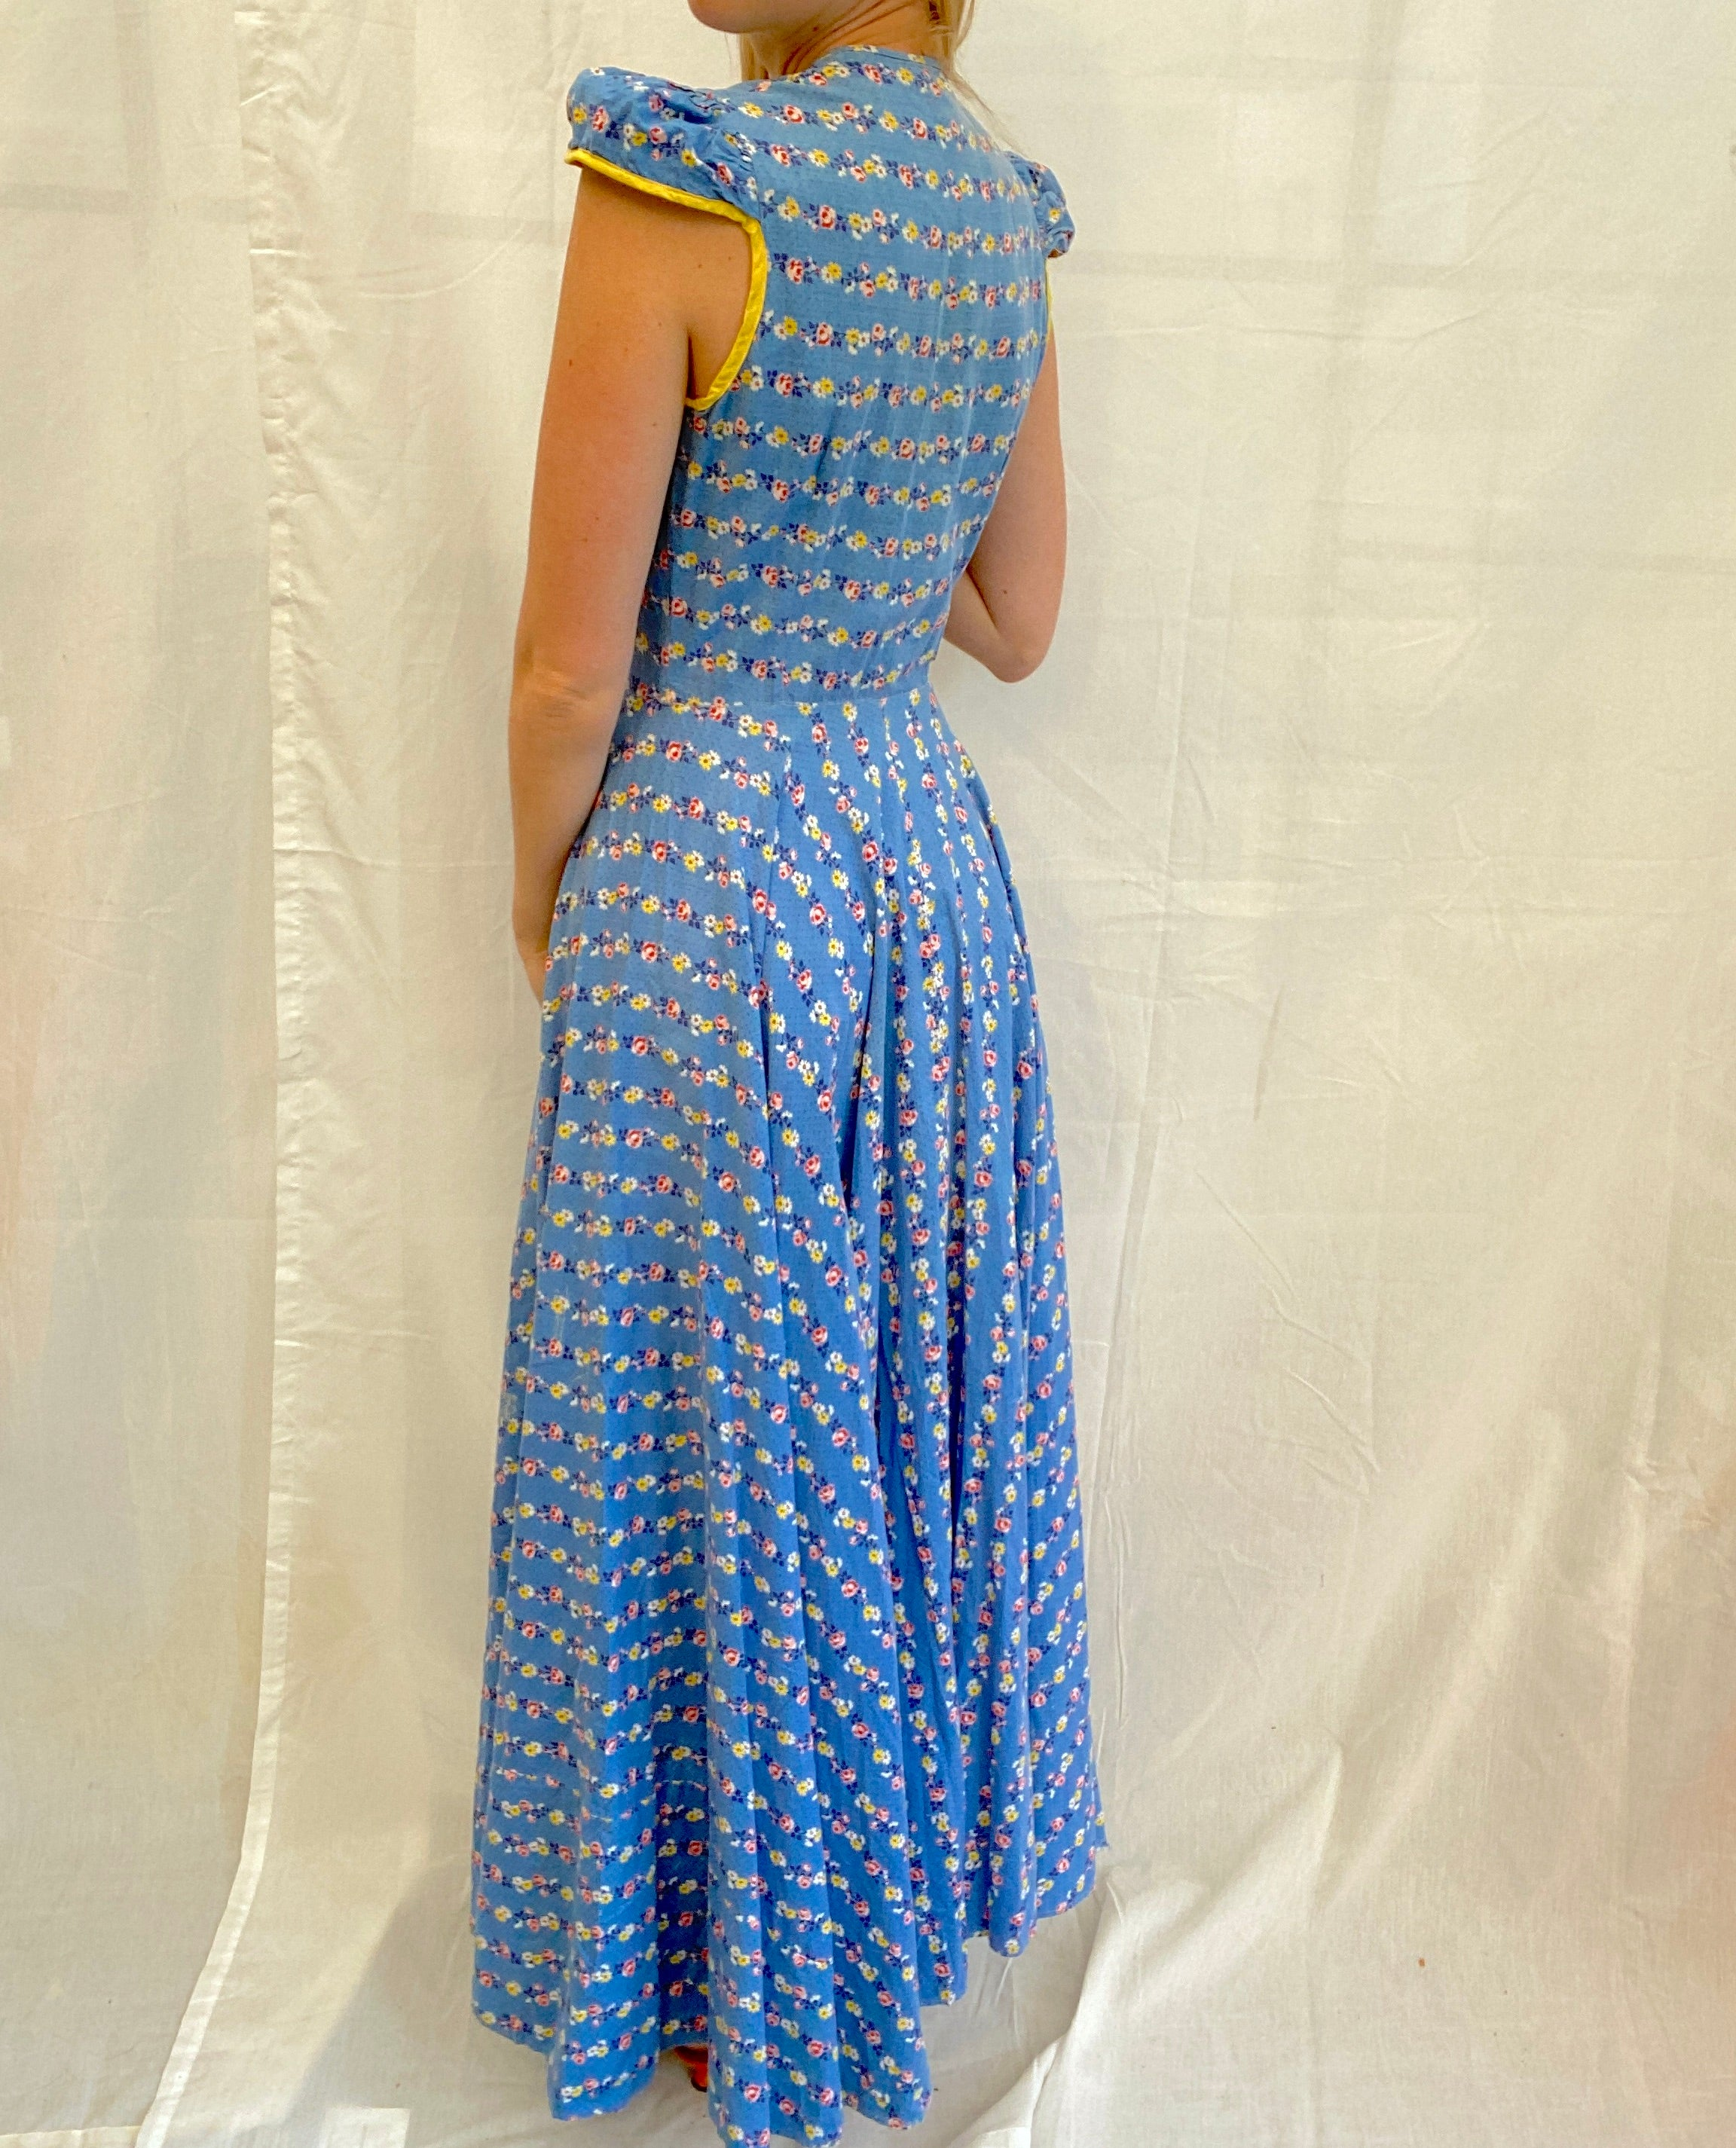 1940's Blue Cotton House Dress with Floral And Polka Dot Print